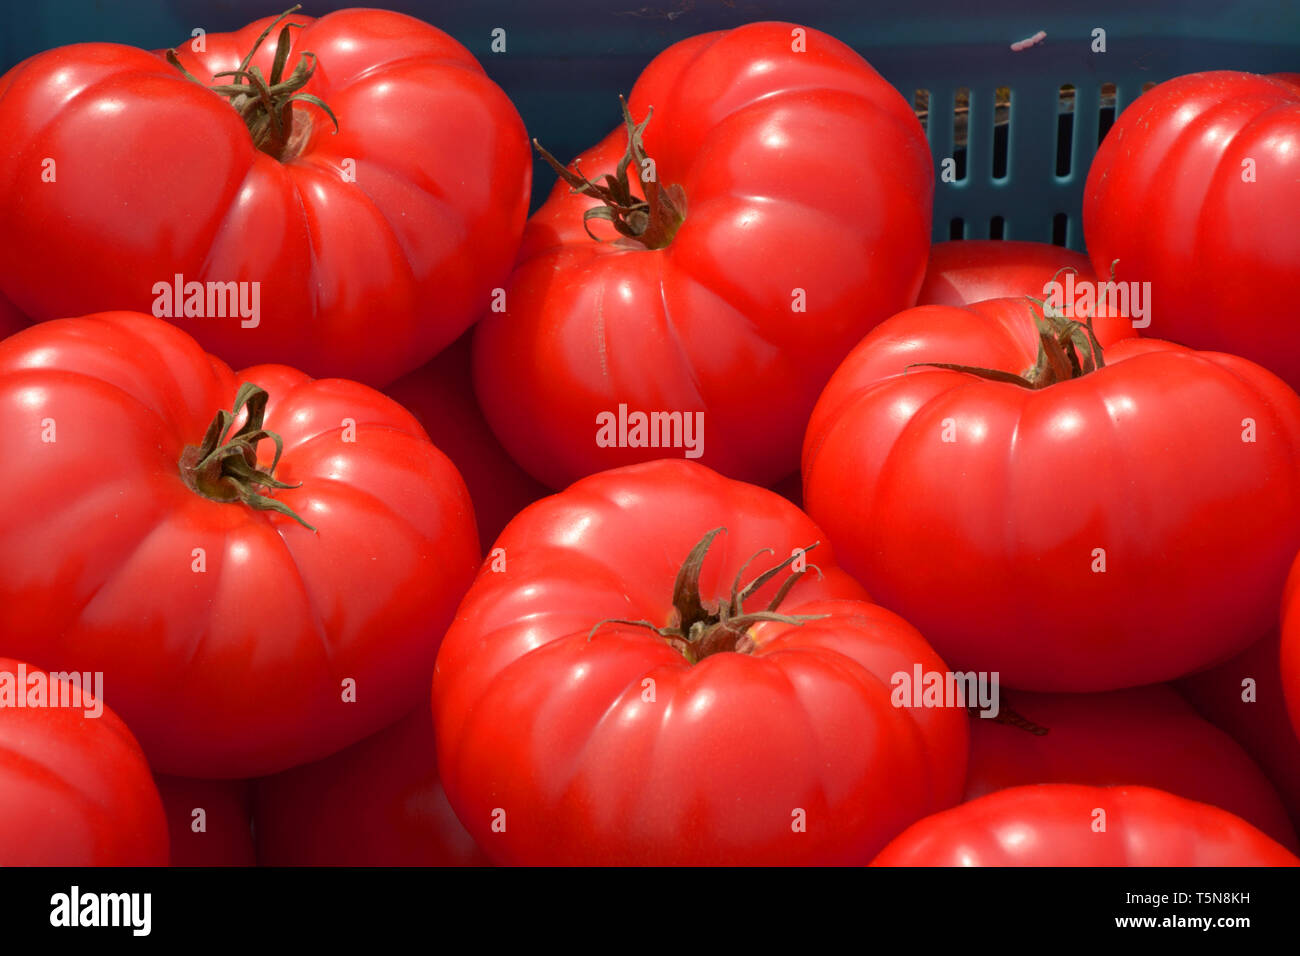 red beef steak tomatoes for sale macro shot, big red beef tomatoes on a market in bavaria - Stock Image